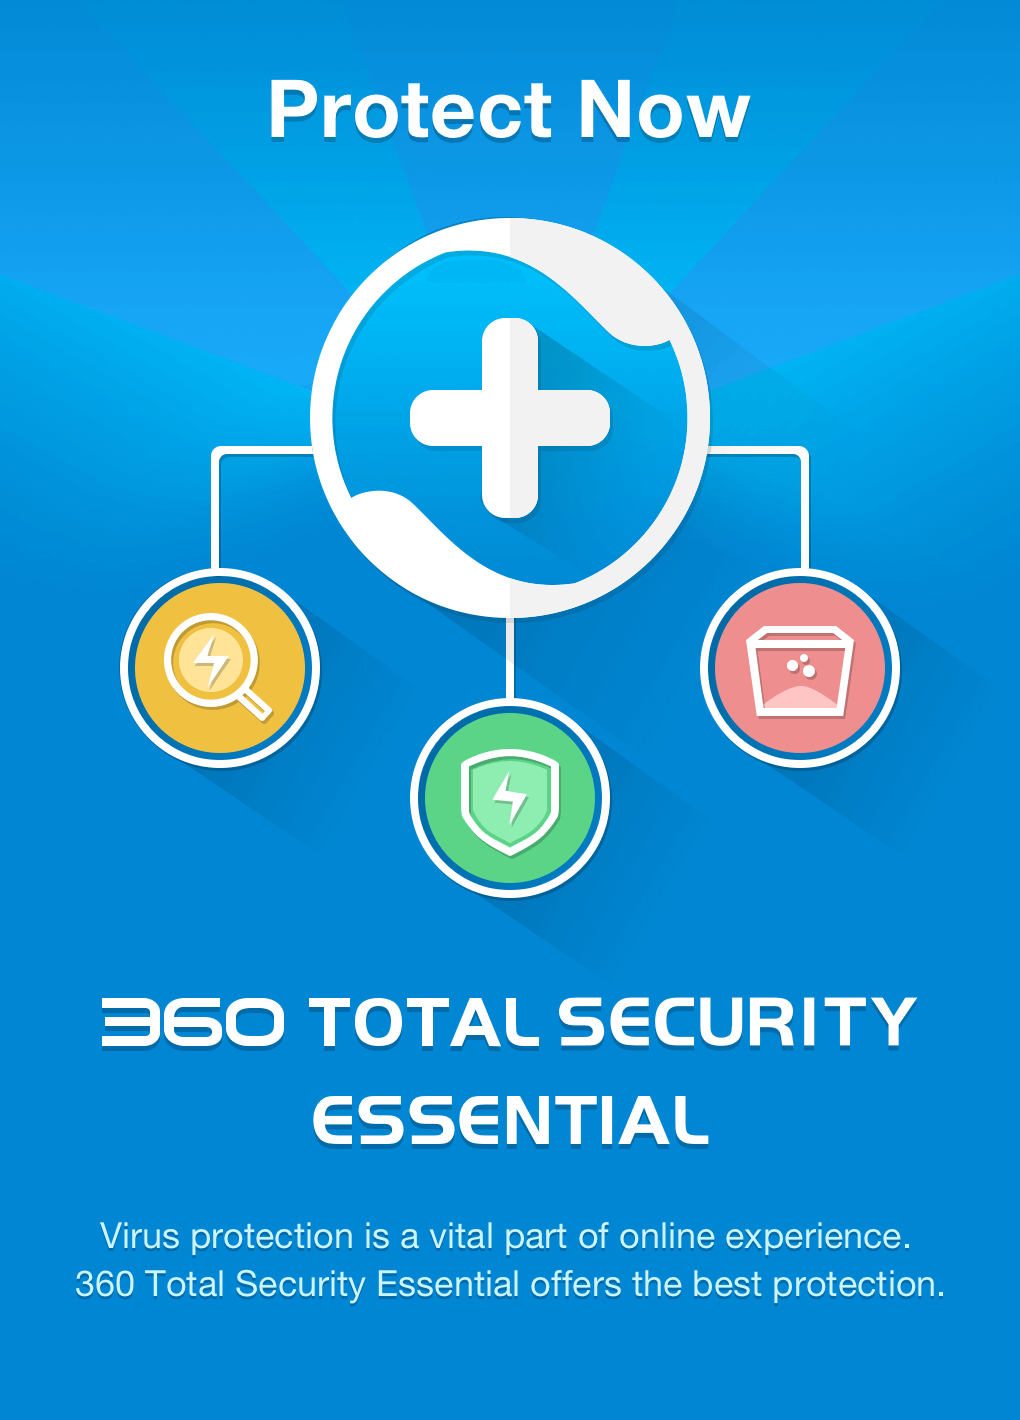 Free PC Protection & Internet Security Software | 360 Total Security